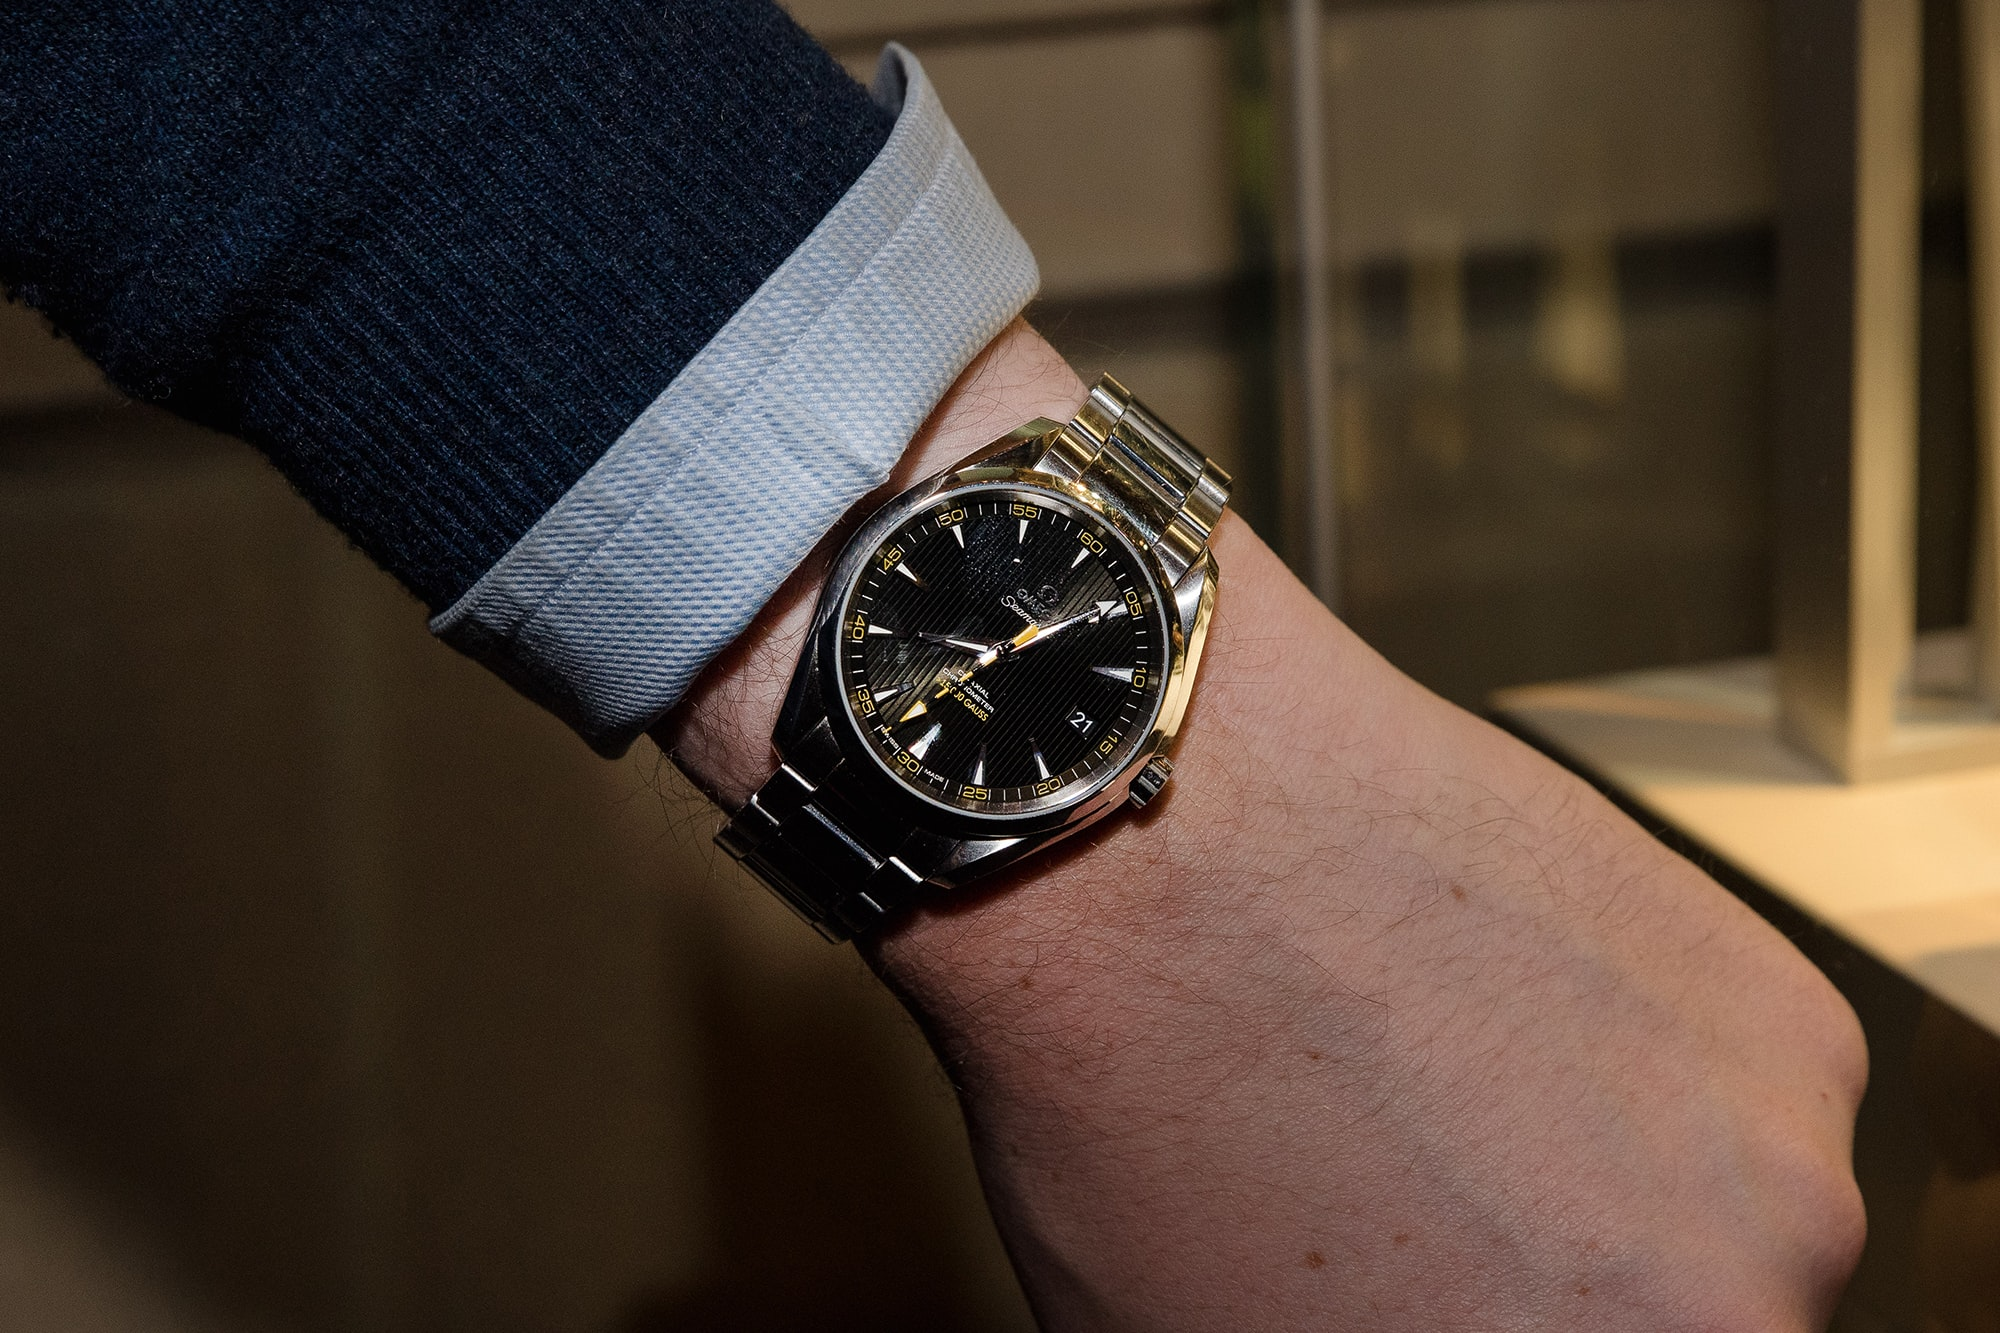 Photo Report: HODINKEE And Omega Celebrate The 60th Anniversary Of The Speedmaster Photo Report: HODINKEE And Omega Celebrate The 60th Anniversary Of The Speedmaster  20170221 OmegaSpeedmaster60th 117